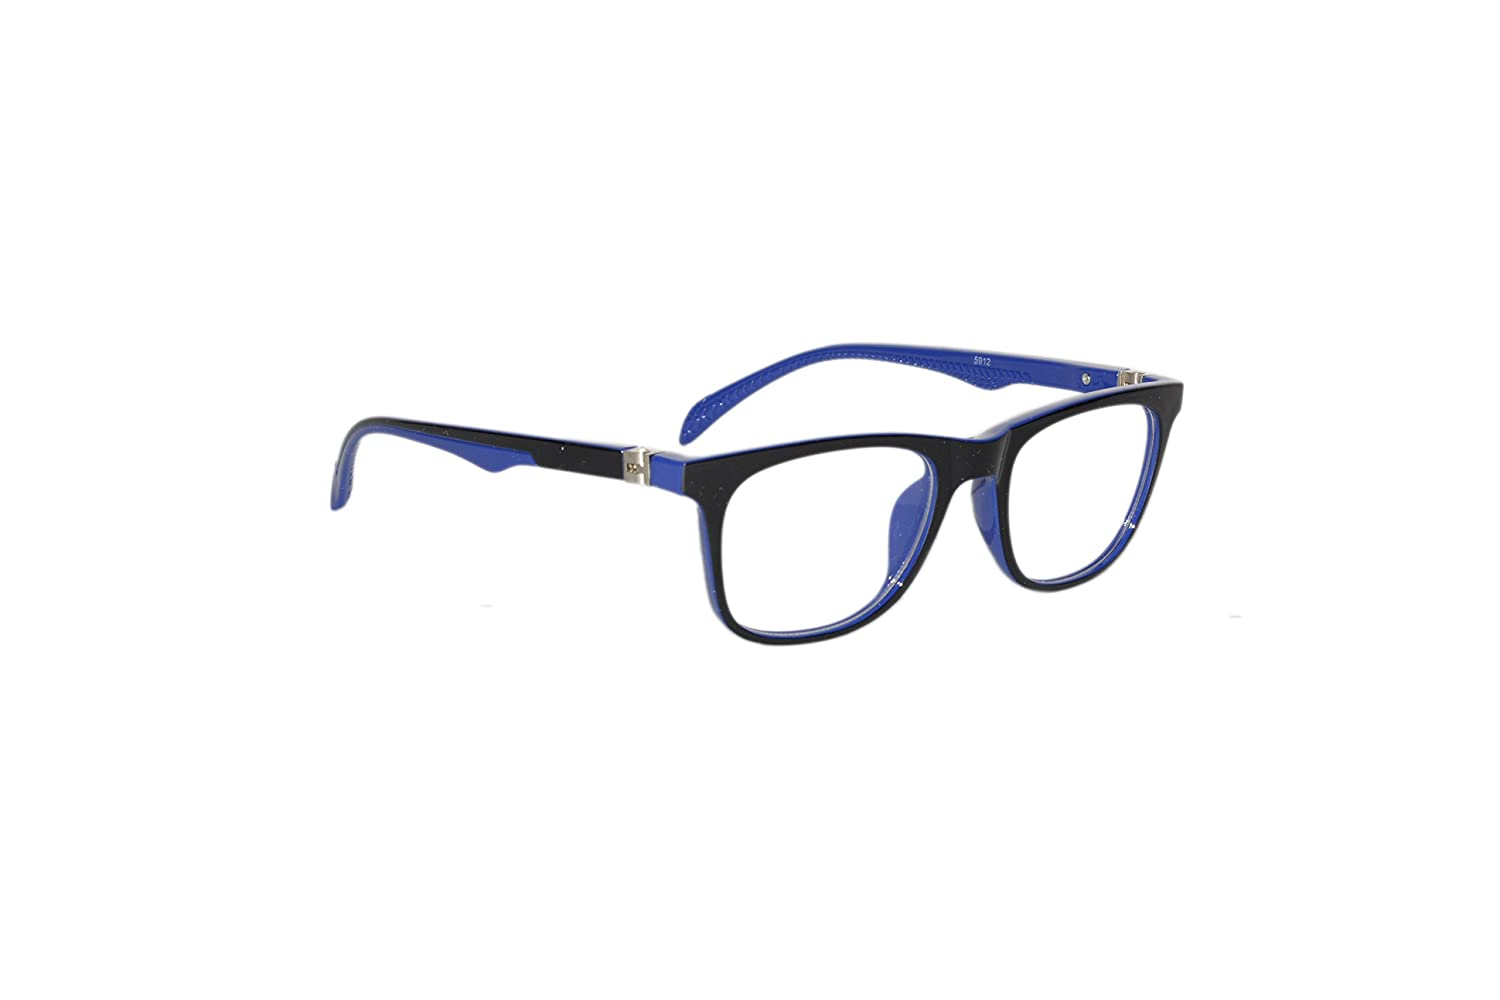 11d2a29de0 Peter Jones Black and Blue Unisex Square Optical Frame with Flexible  Temples (5912IBL)  Amazon.in  Clothing   Accessories